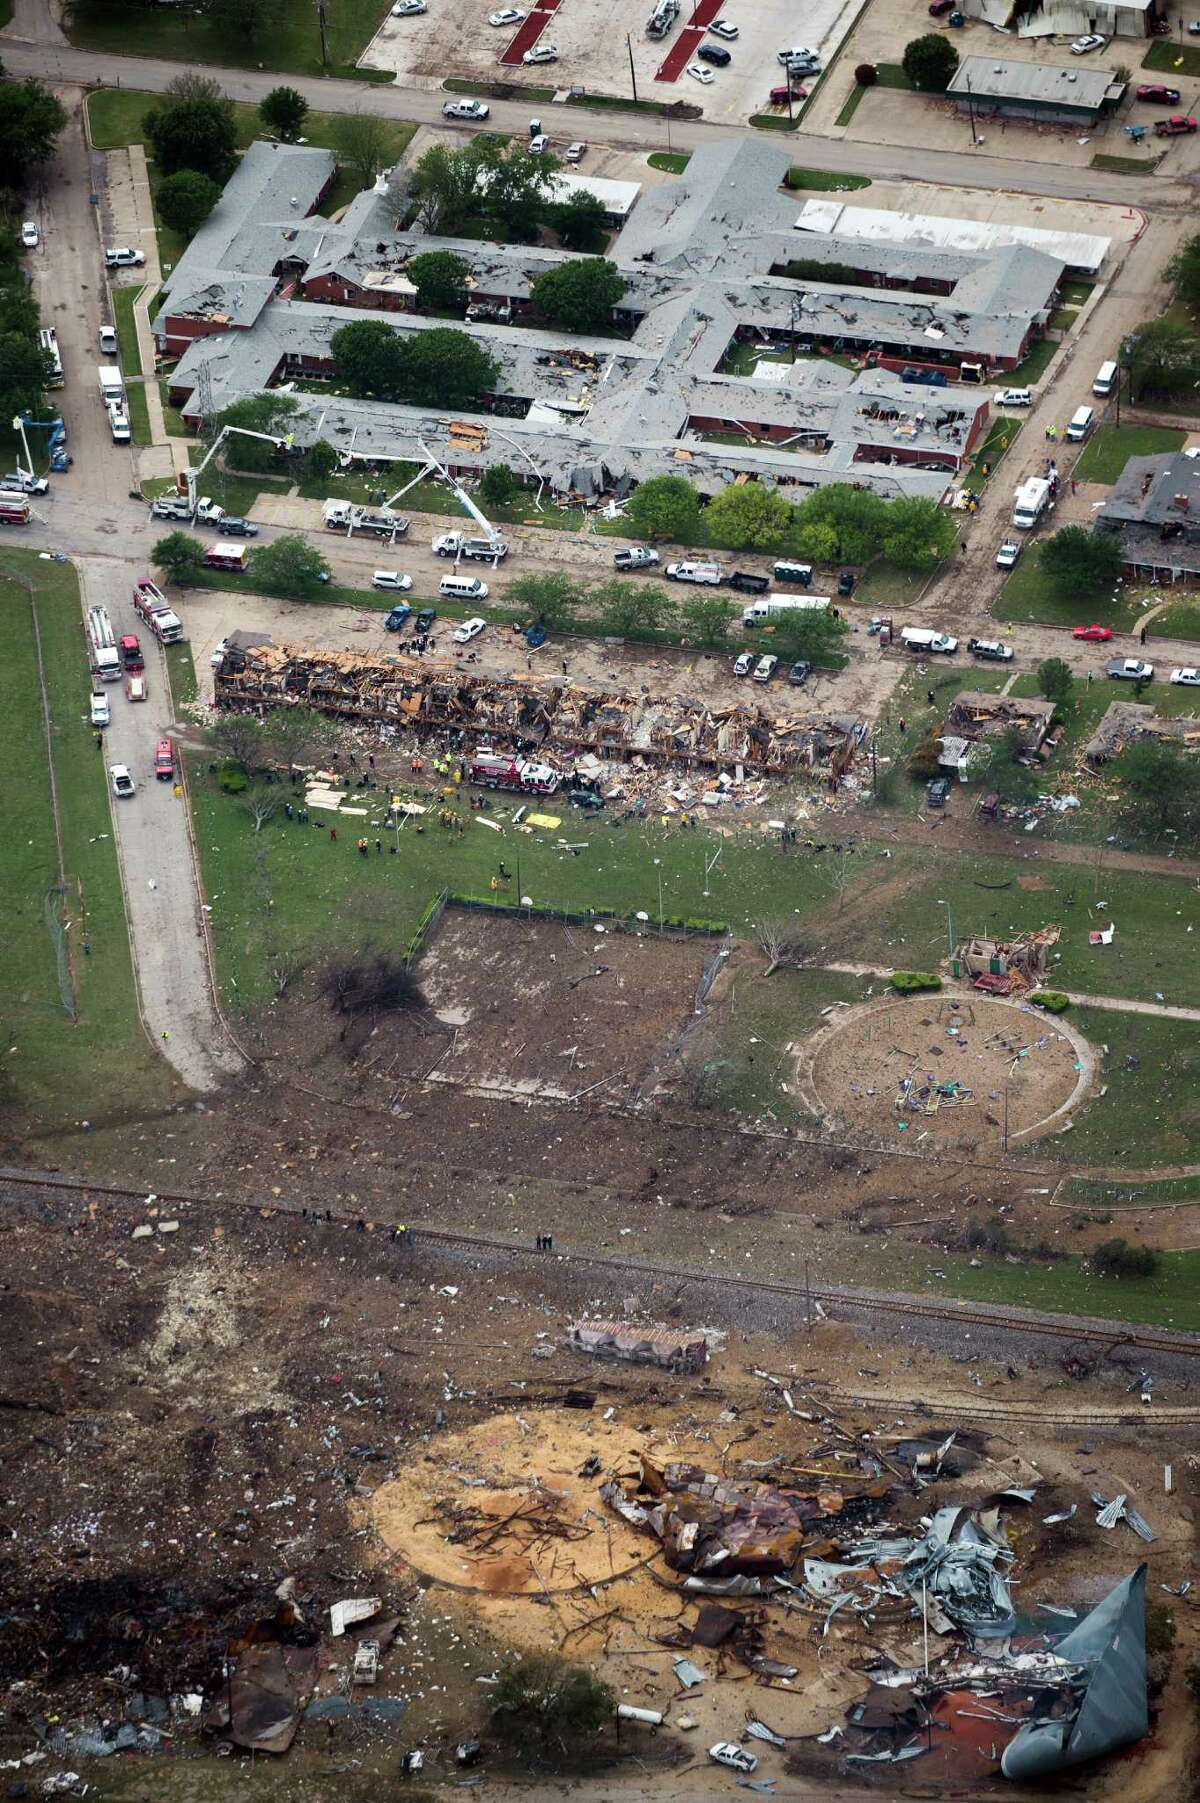 Damage from the explosion of the fertilizer plant in West is seen the day after. The plant is at the bottom, an apartment complex is at center, and a nursing home is at top.